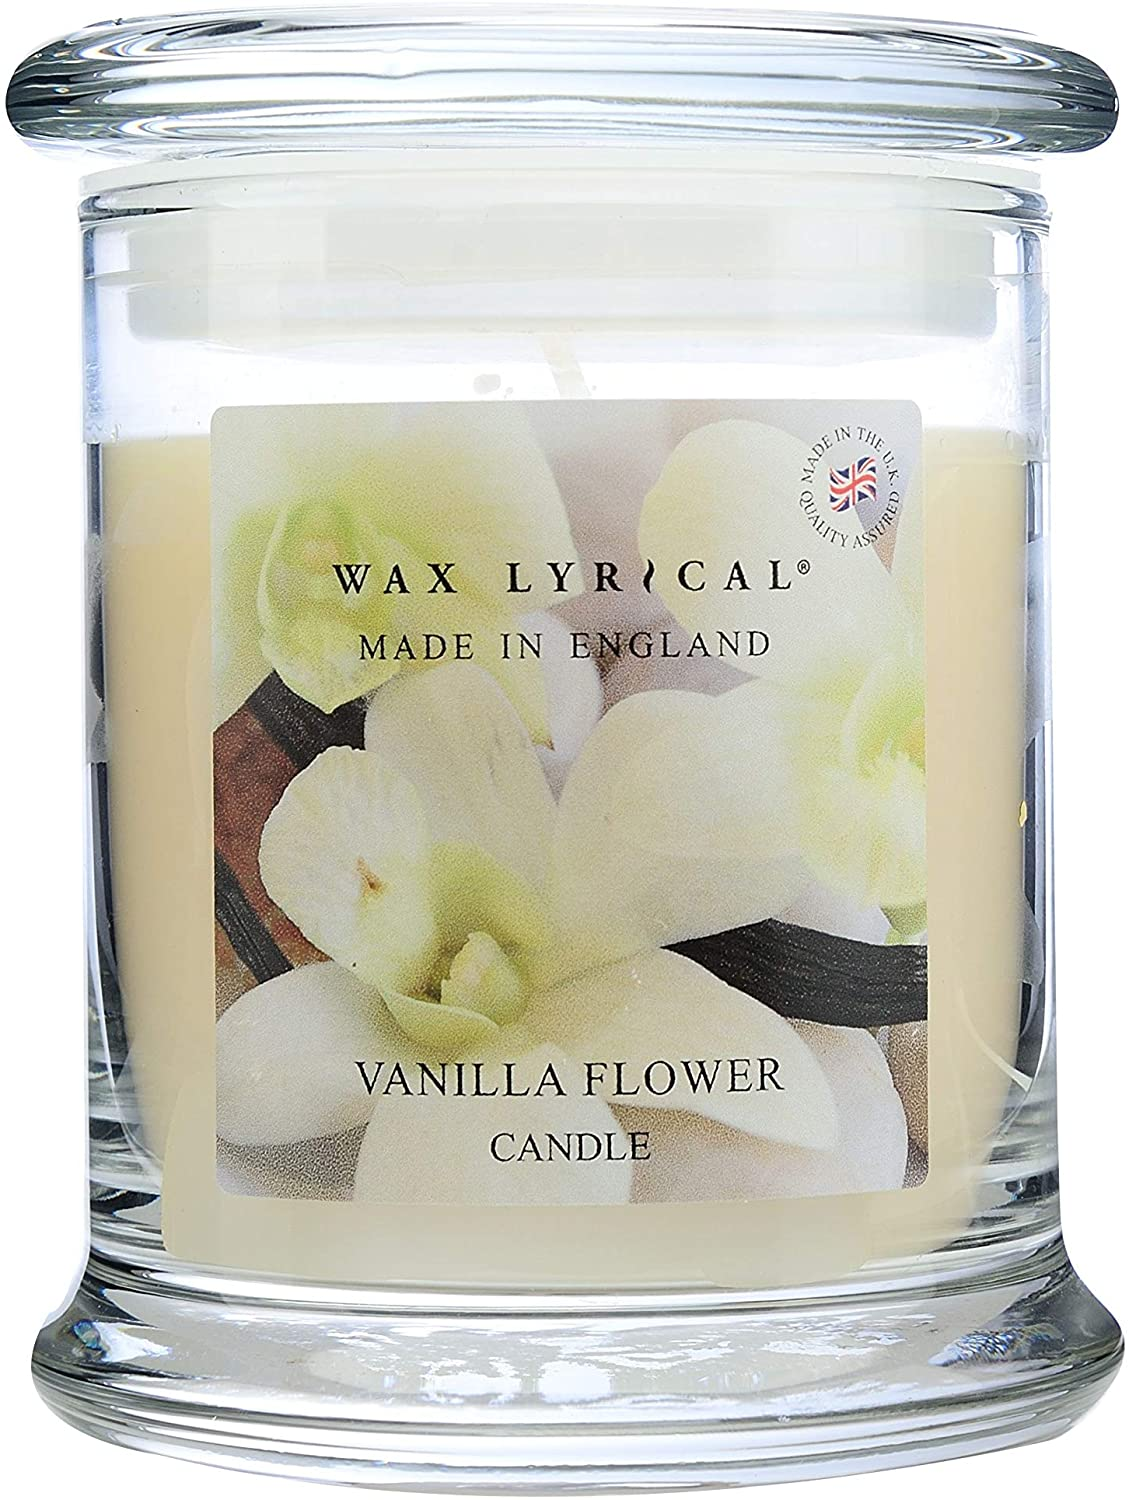 Wax Lyrical Wax Filled Vanilla Flower Scented Candle Jar - Made in England